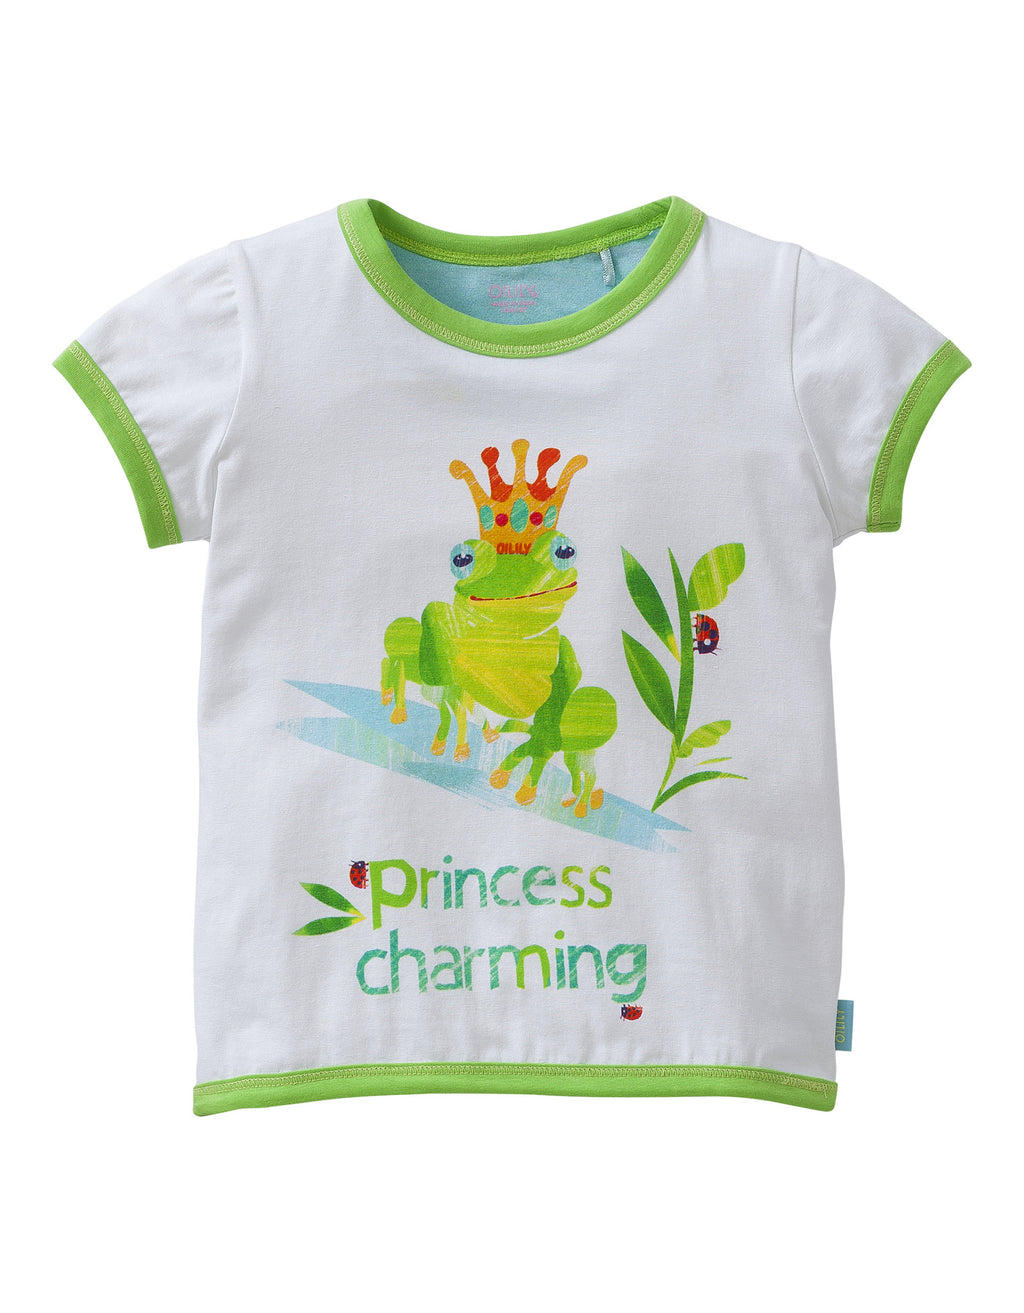 SS17 Oilily Girls Tyna T-Shirt 00 Frog Kiss